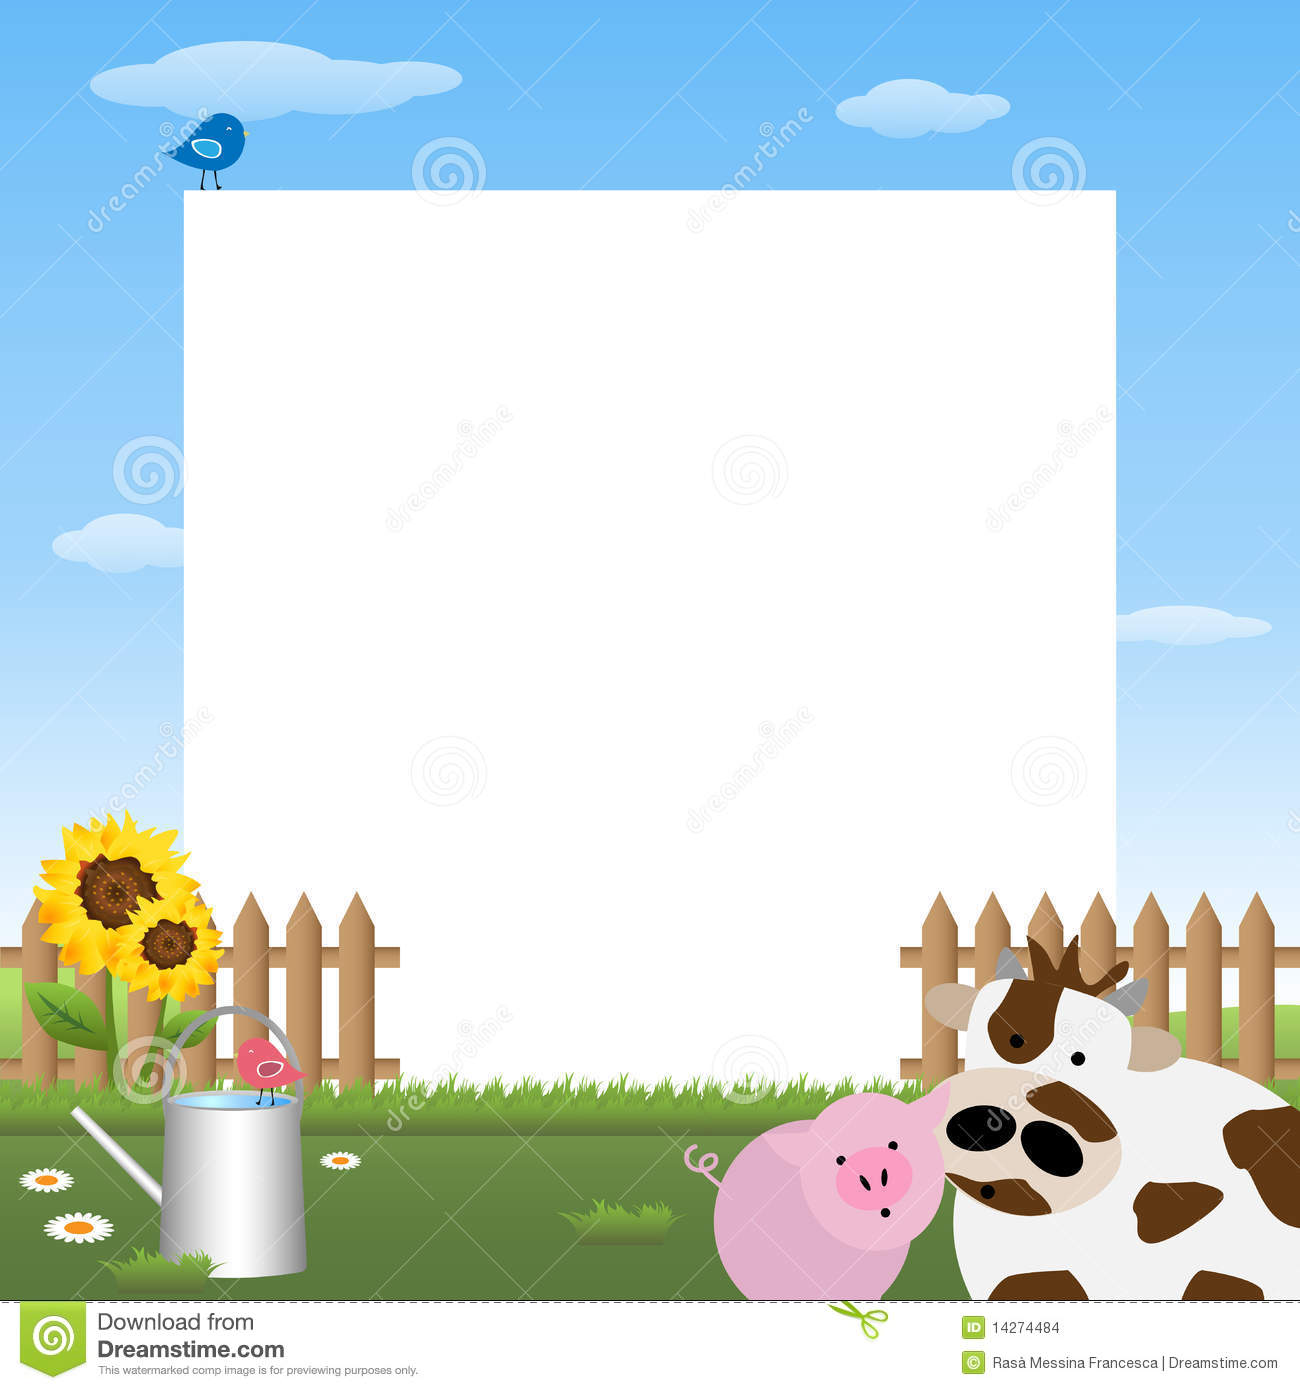 Illustration of a cute farmyard frame.EPS file available.